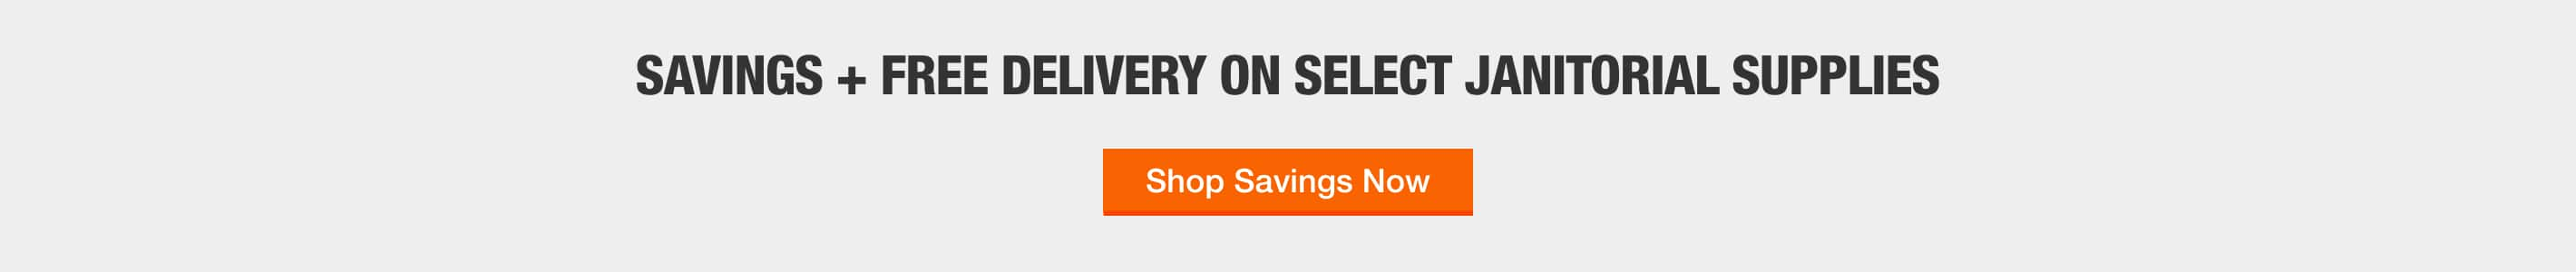 SAVINGS + FREE DELIVERY ON SELECT JANITORIAL SUPPLIES Shop Savings Now